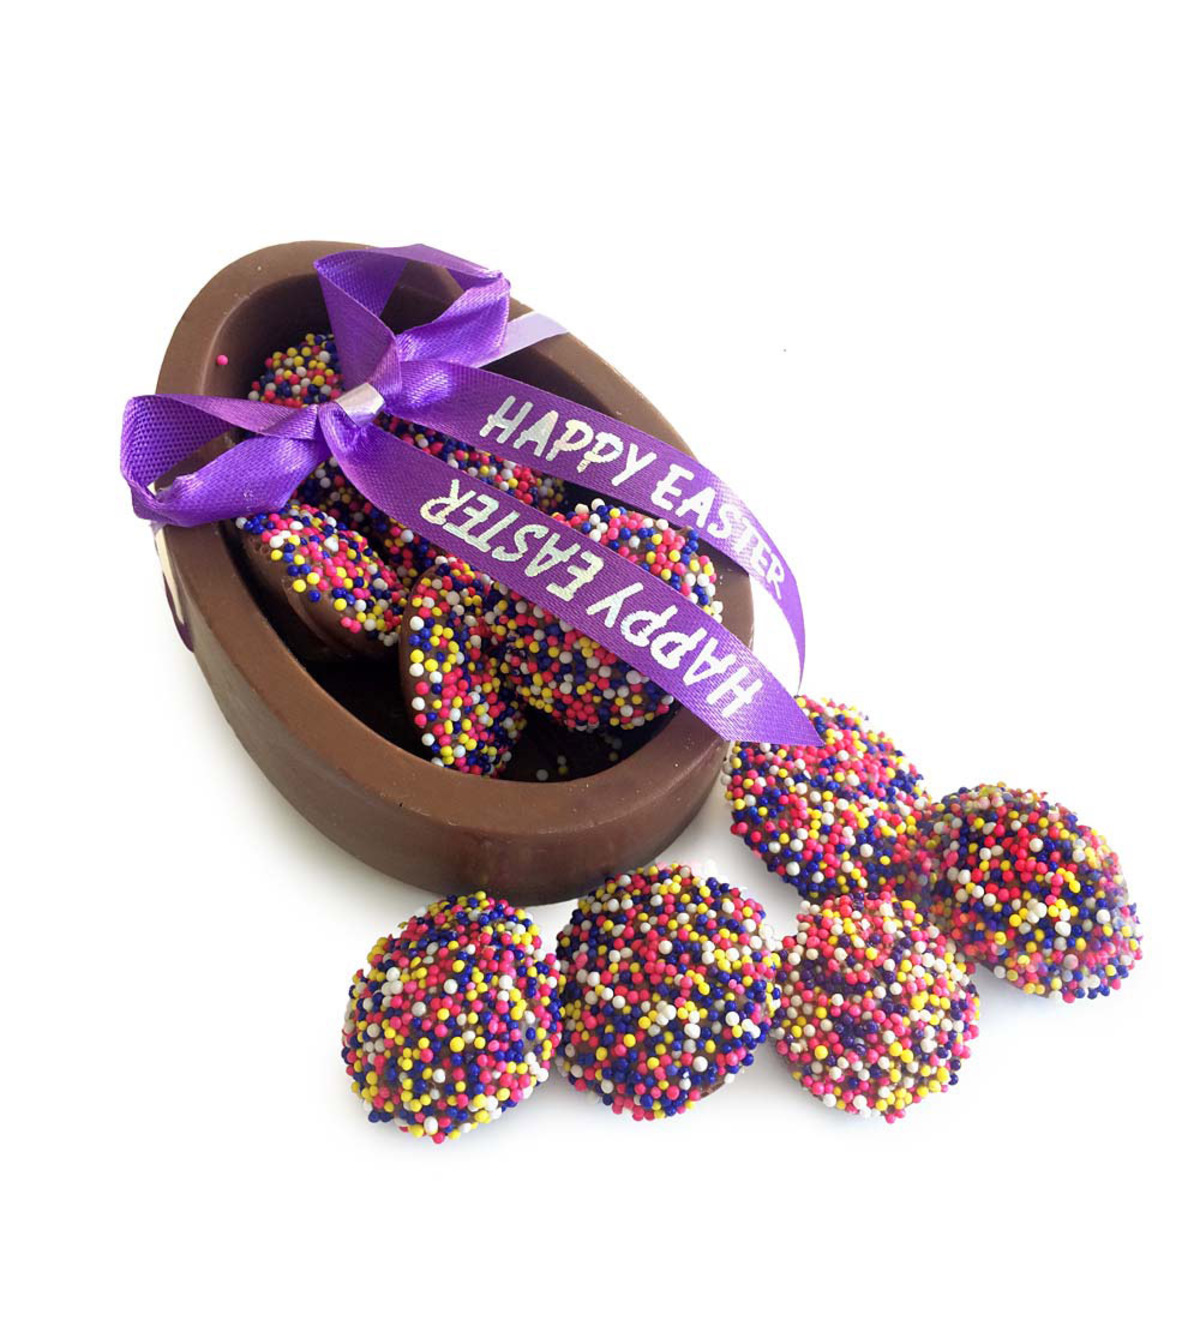 Easter Egg Chocolates Dish